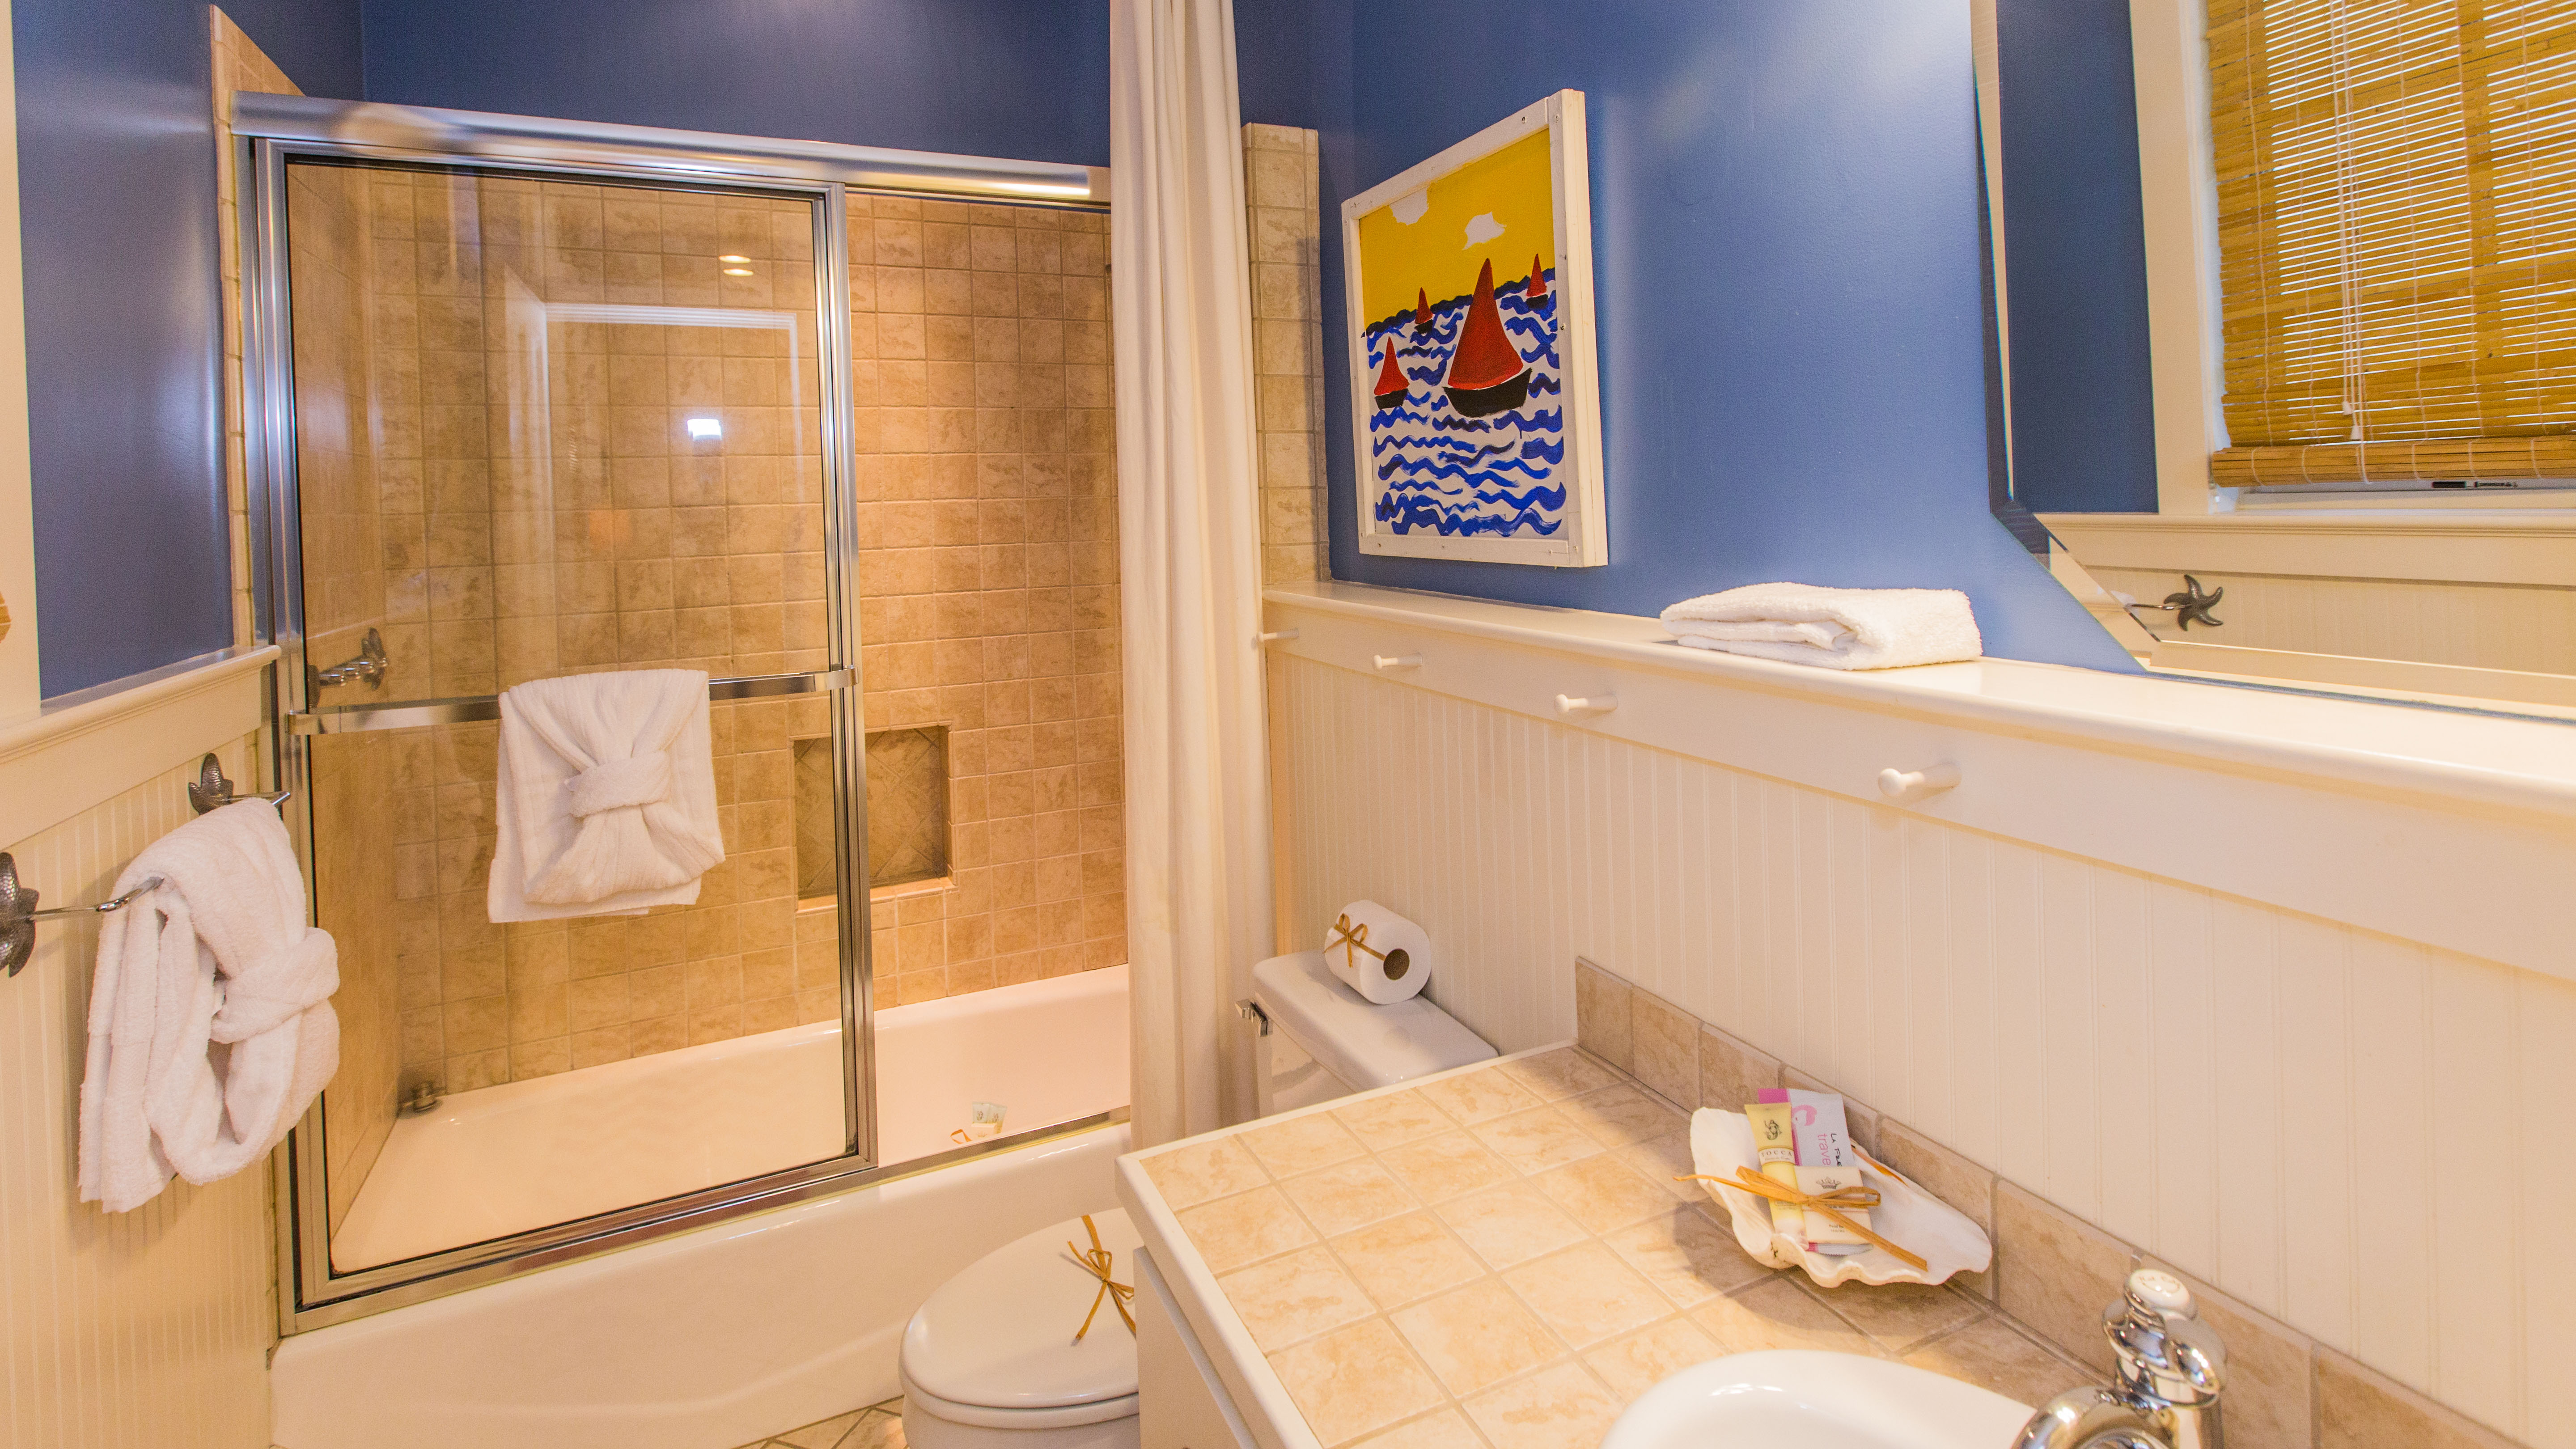 En suite bath has tub/shower combination